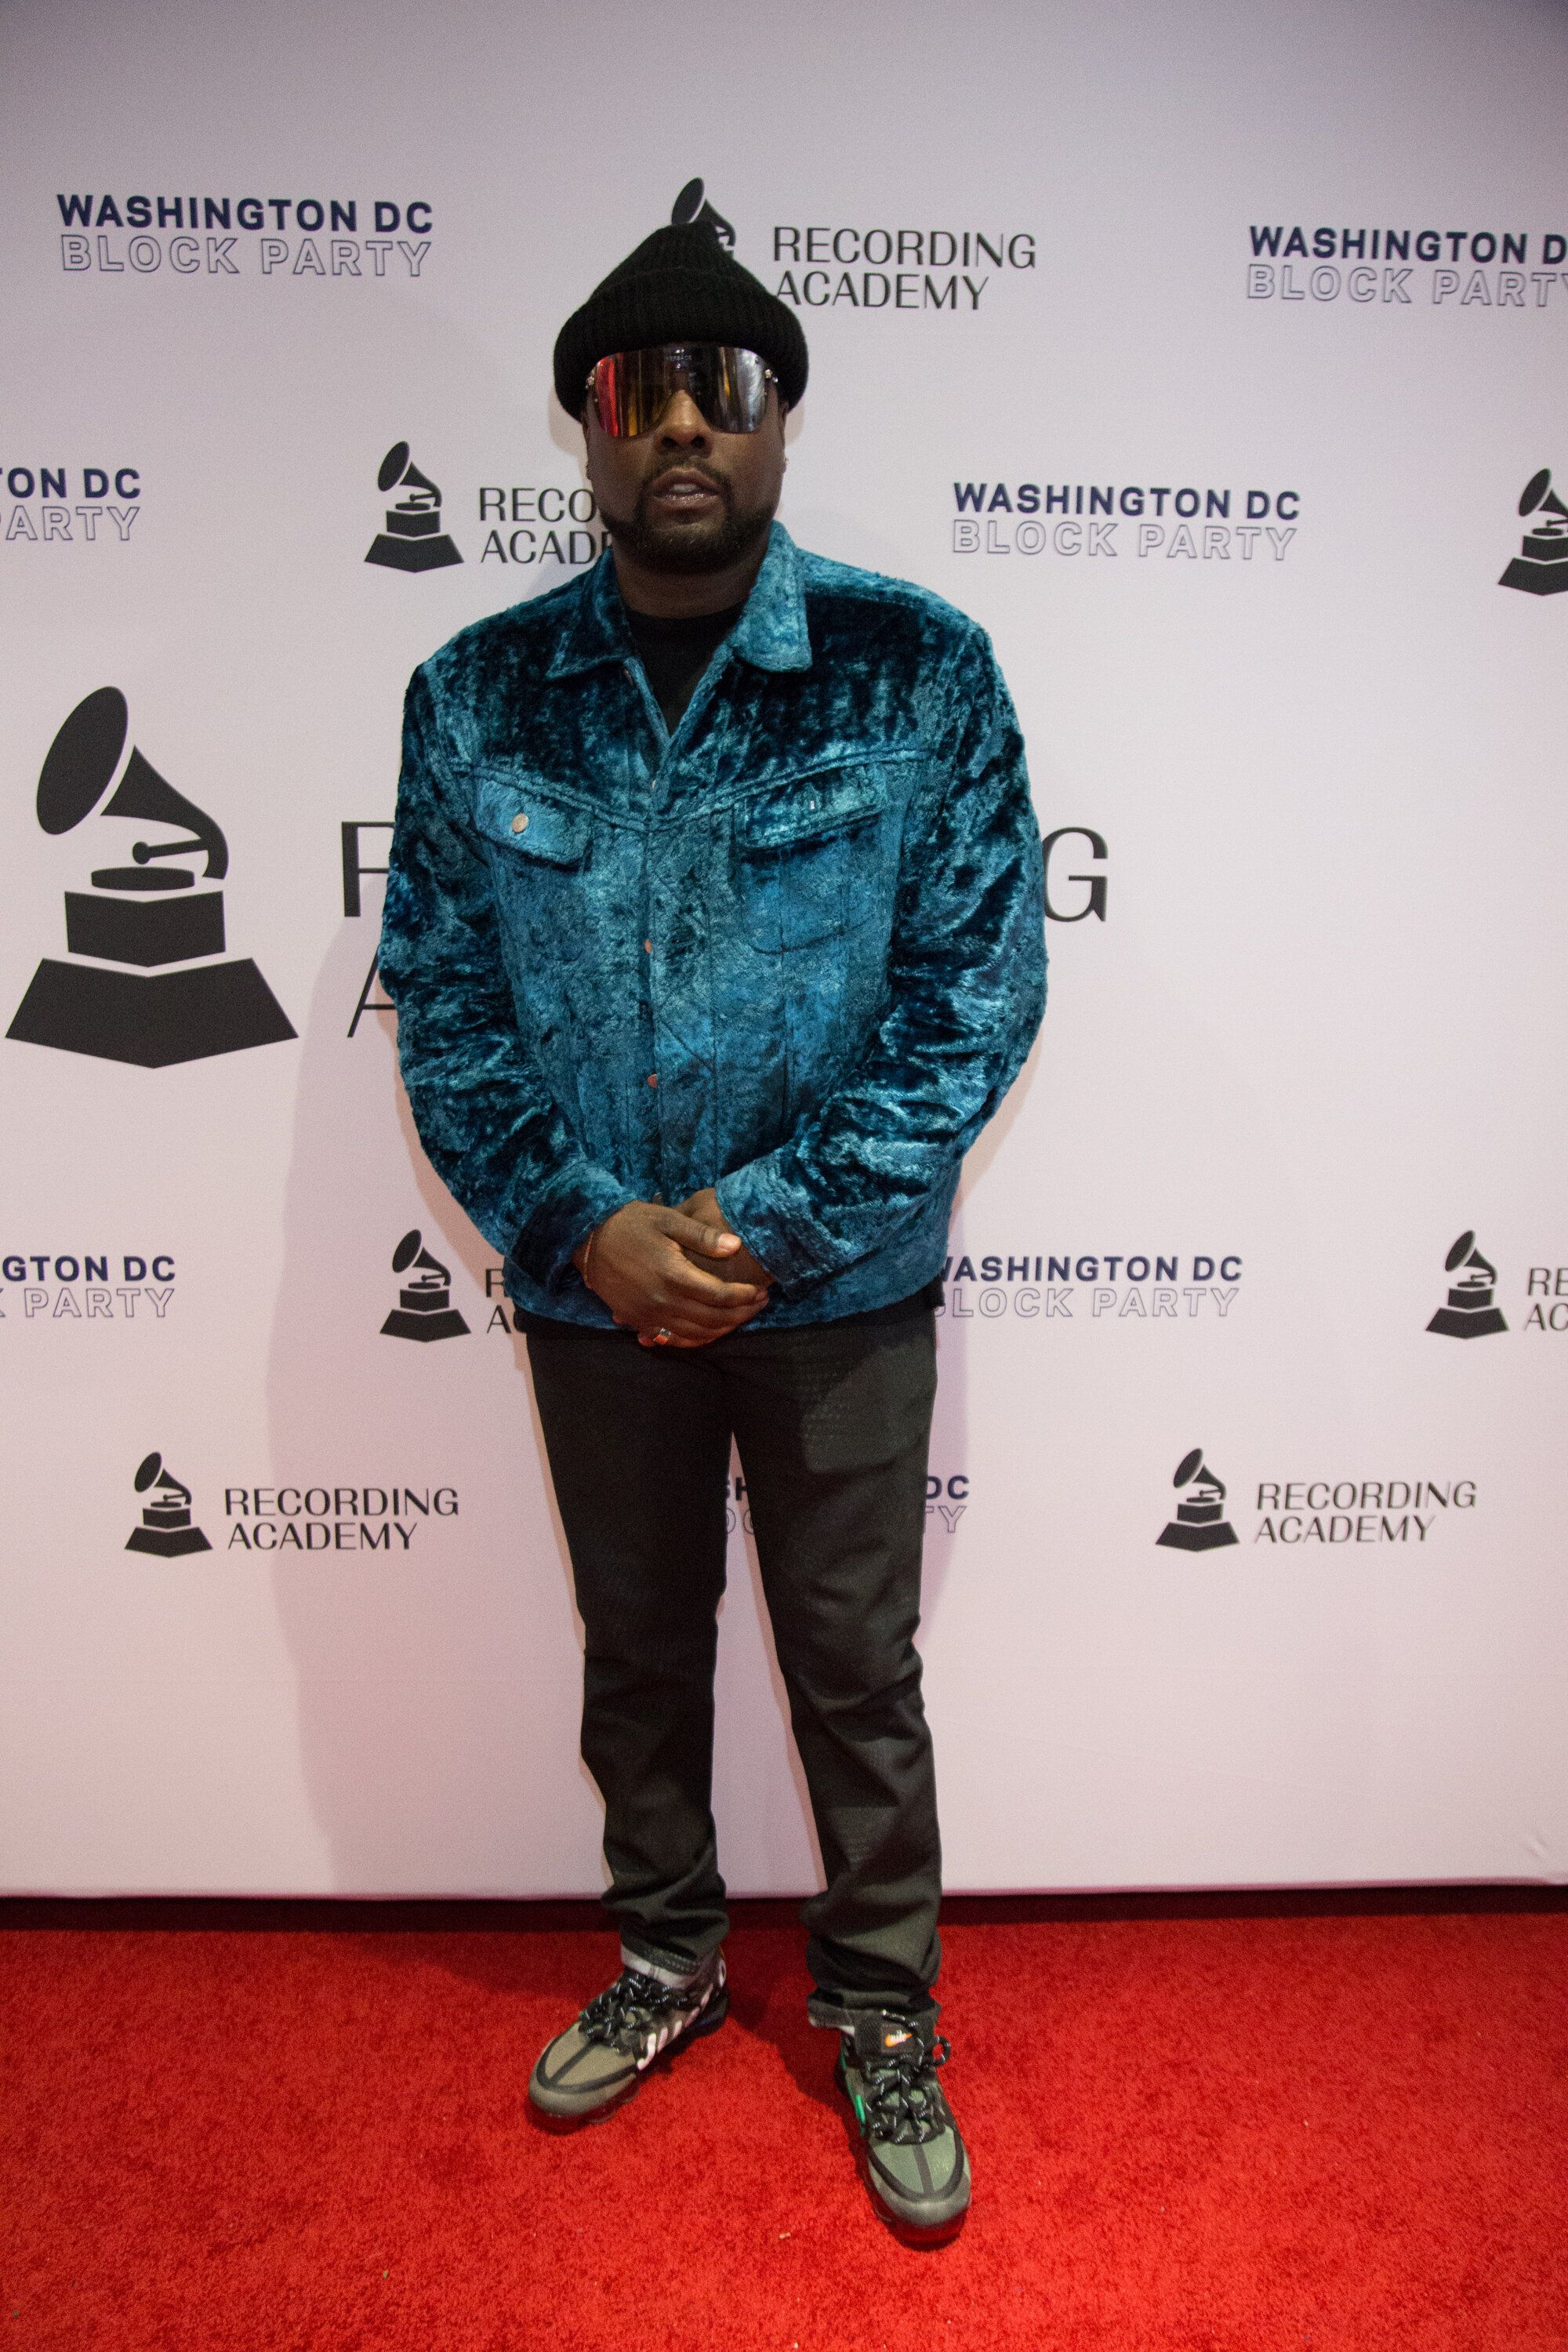 WASHINGTON, DC - MAY 10: Wale attends WDC Chapter Block Party at City Winery on May 10, 2019 in Washington, DC. (Photo by Brian Stukes/Getty Images for Recording Academy)